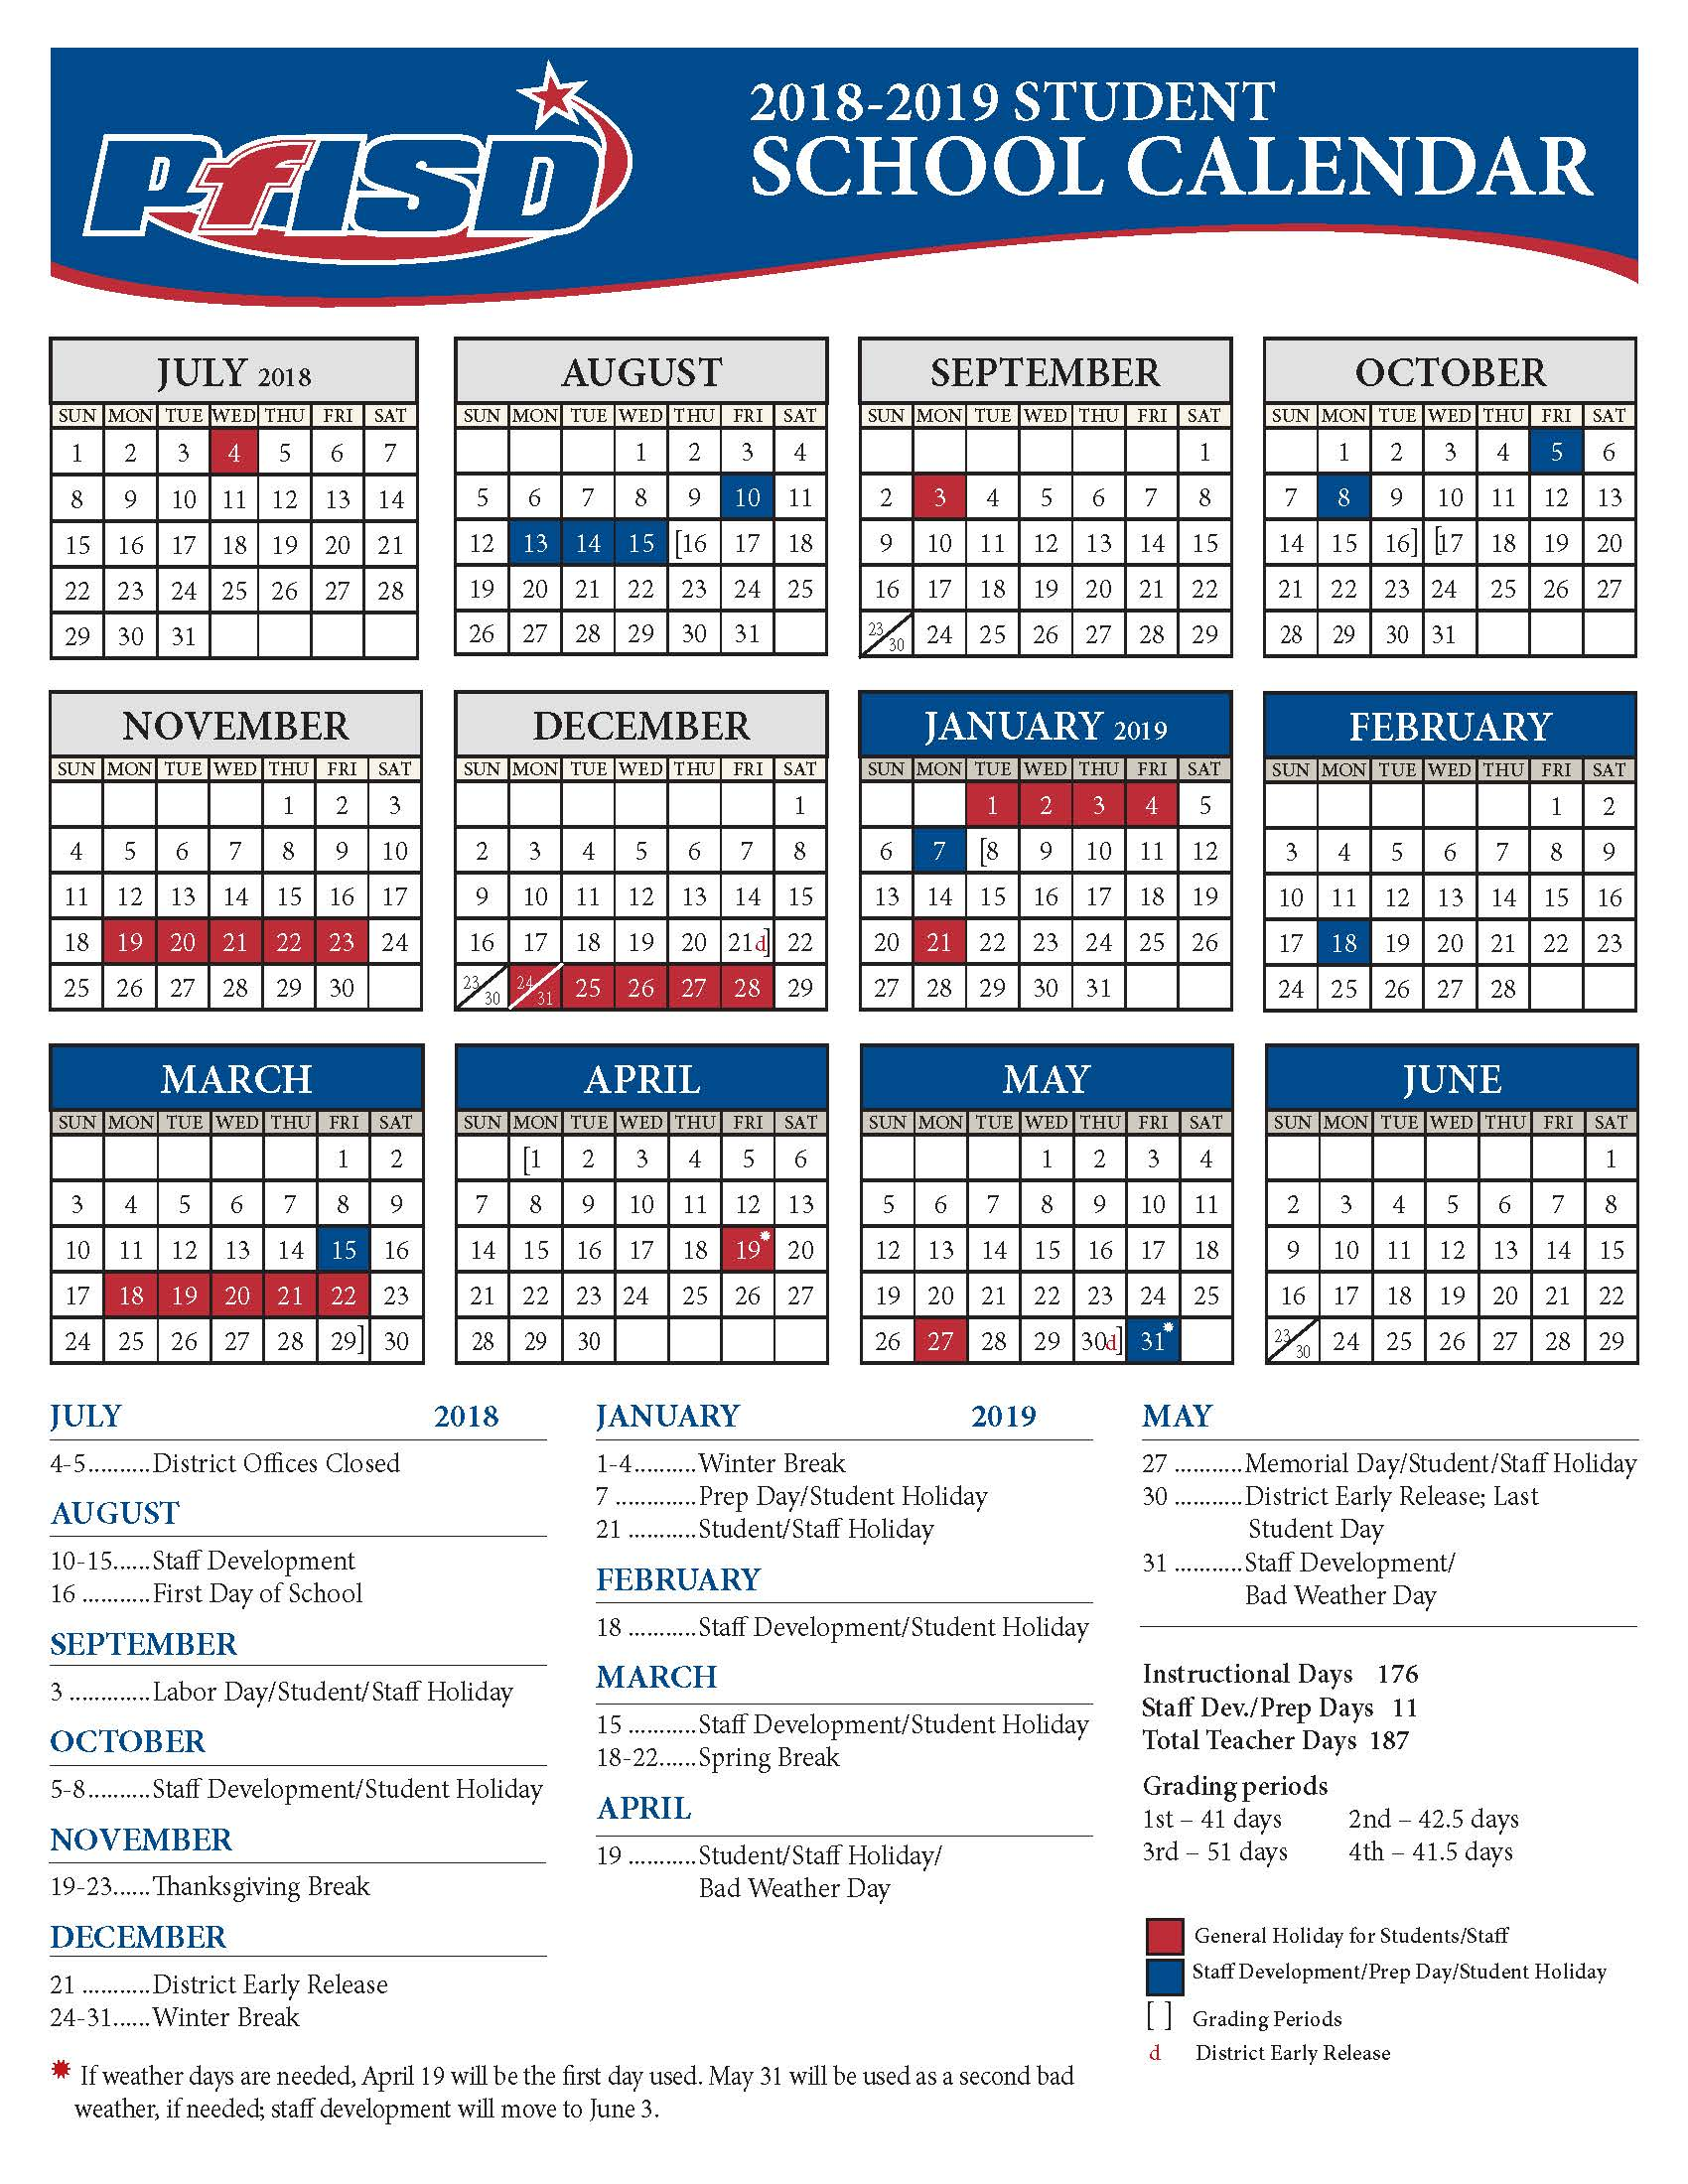 School Year Calendar 2018 2019 District Need A 220 Linebreakers1jpg 19